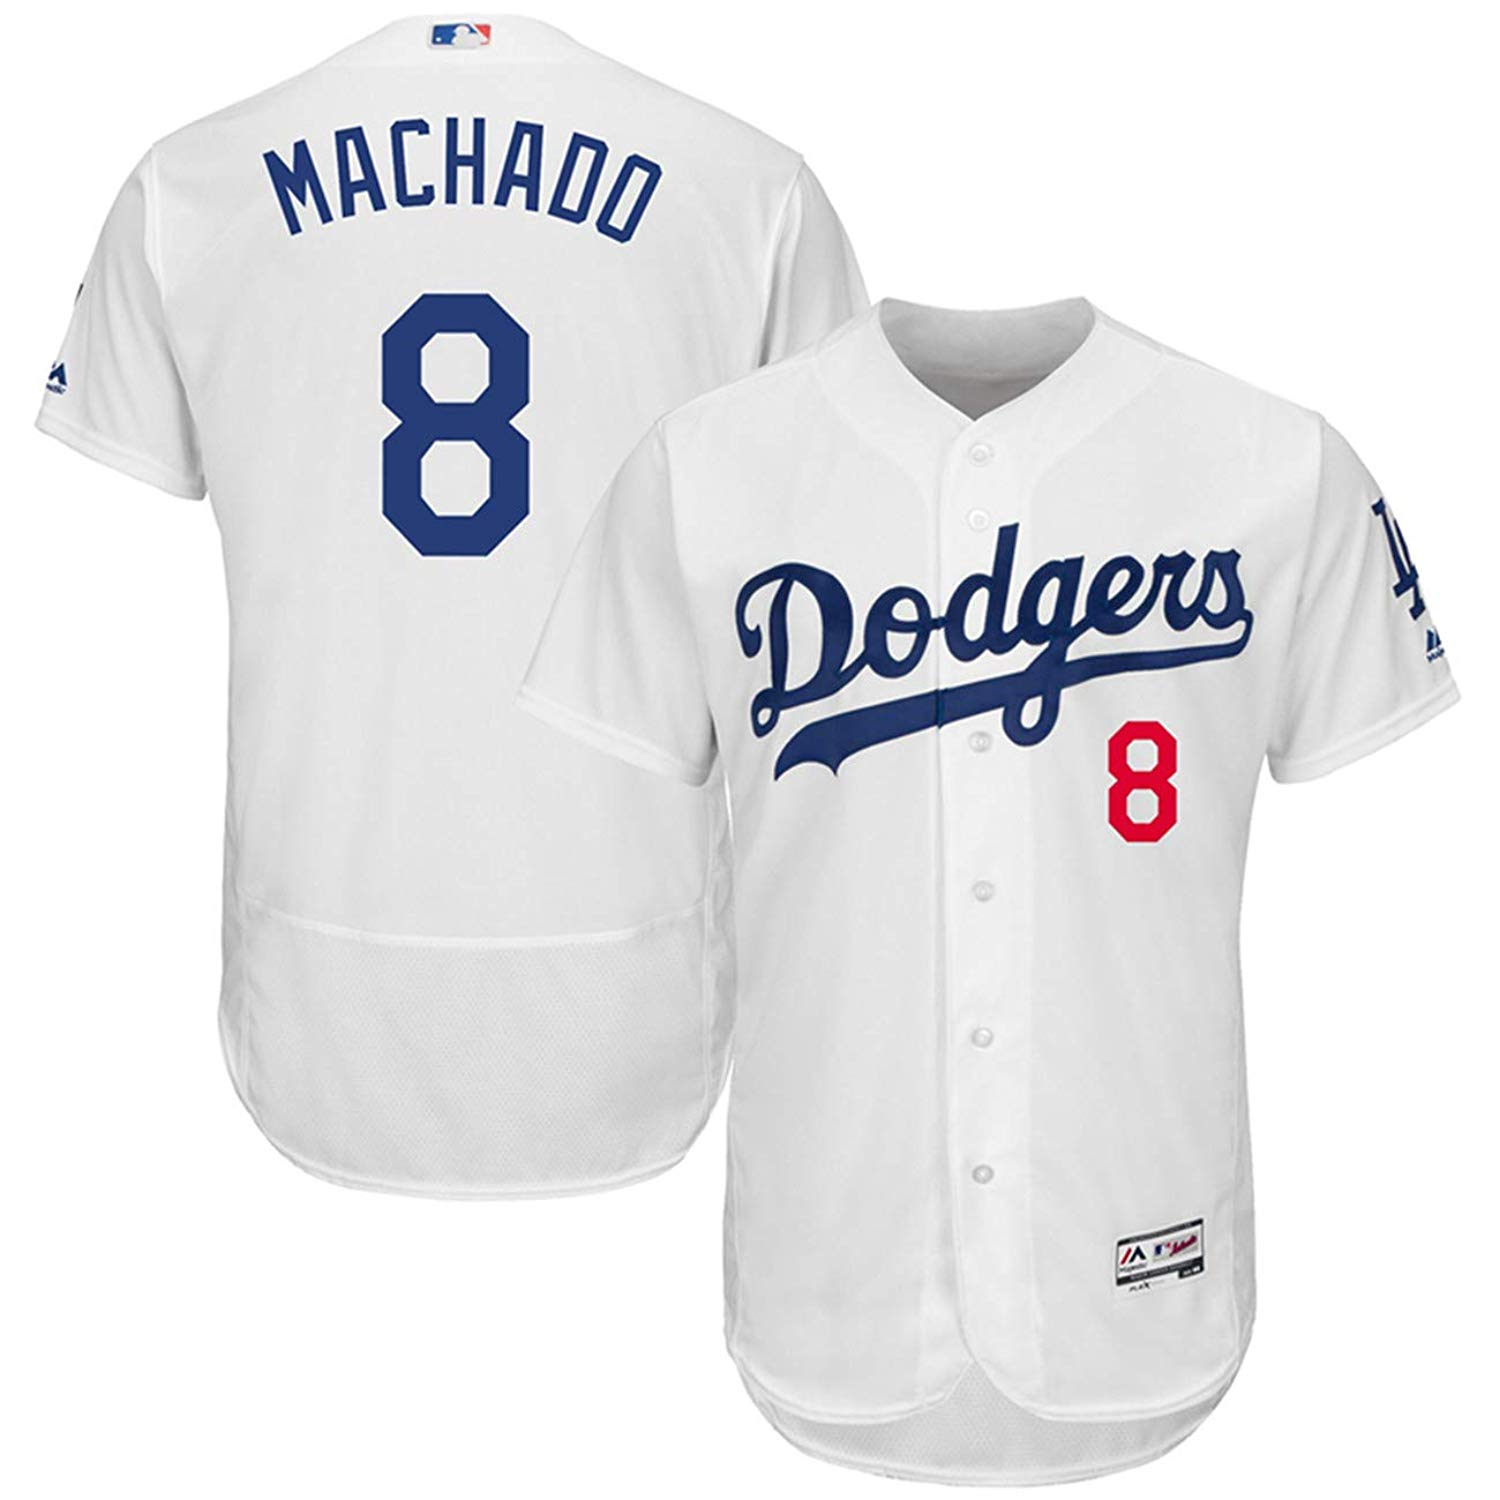 7f7f3c692 Get Quotations · Majestic Athletic Men s Manny Machado Los Angeles Dodgers  Home Player Jersey White